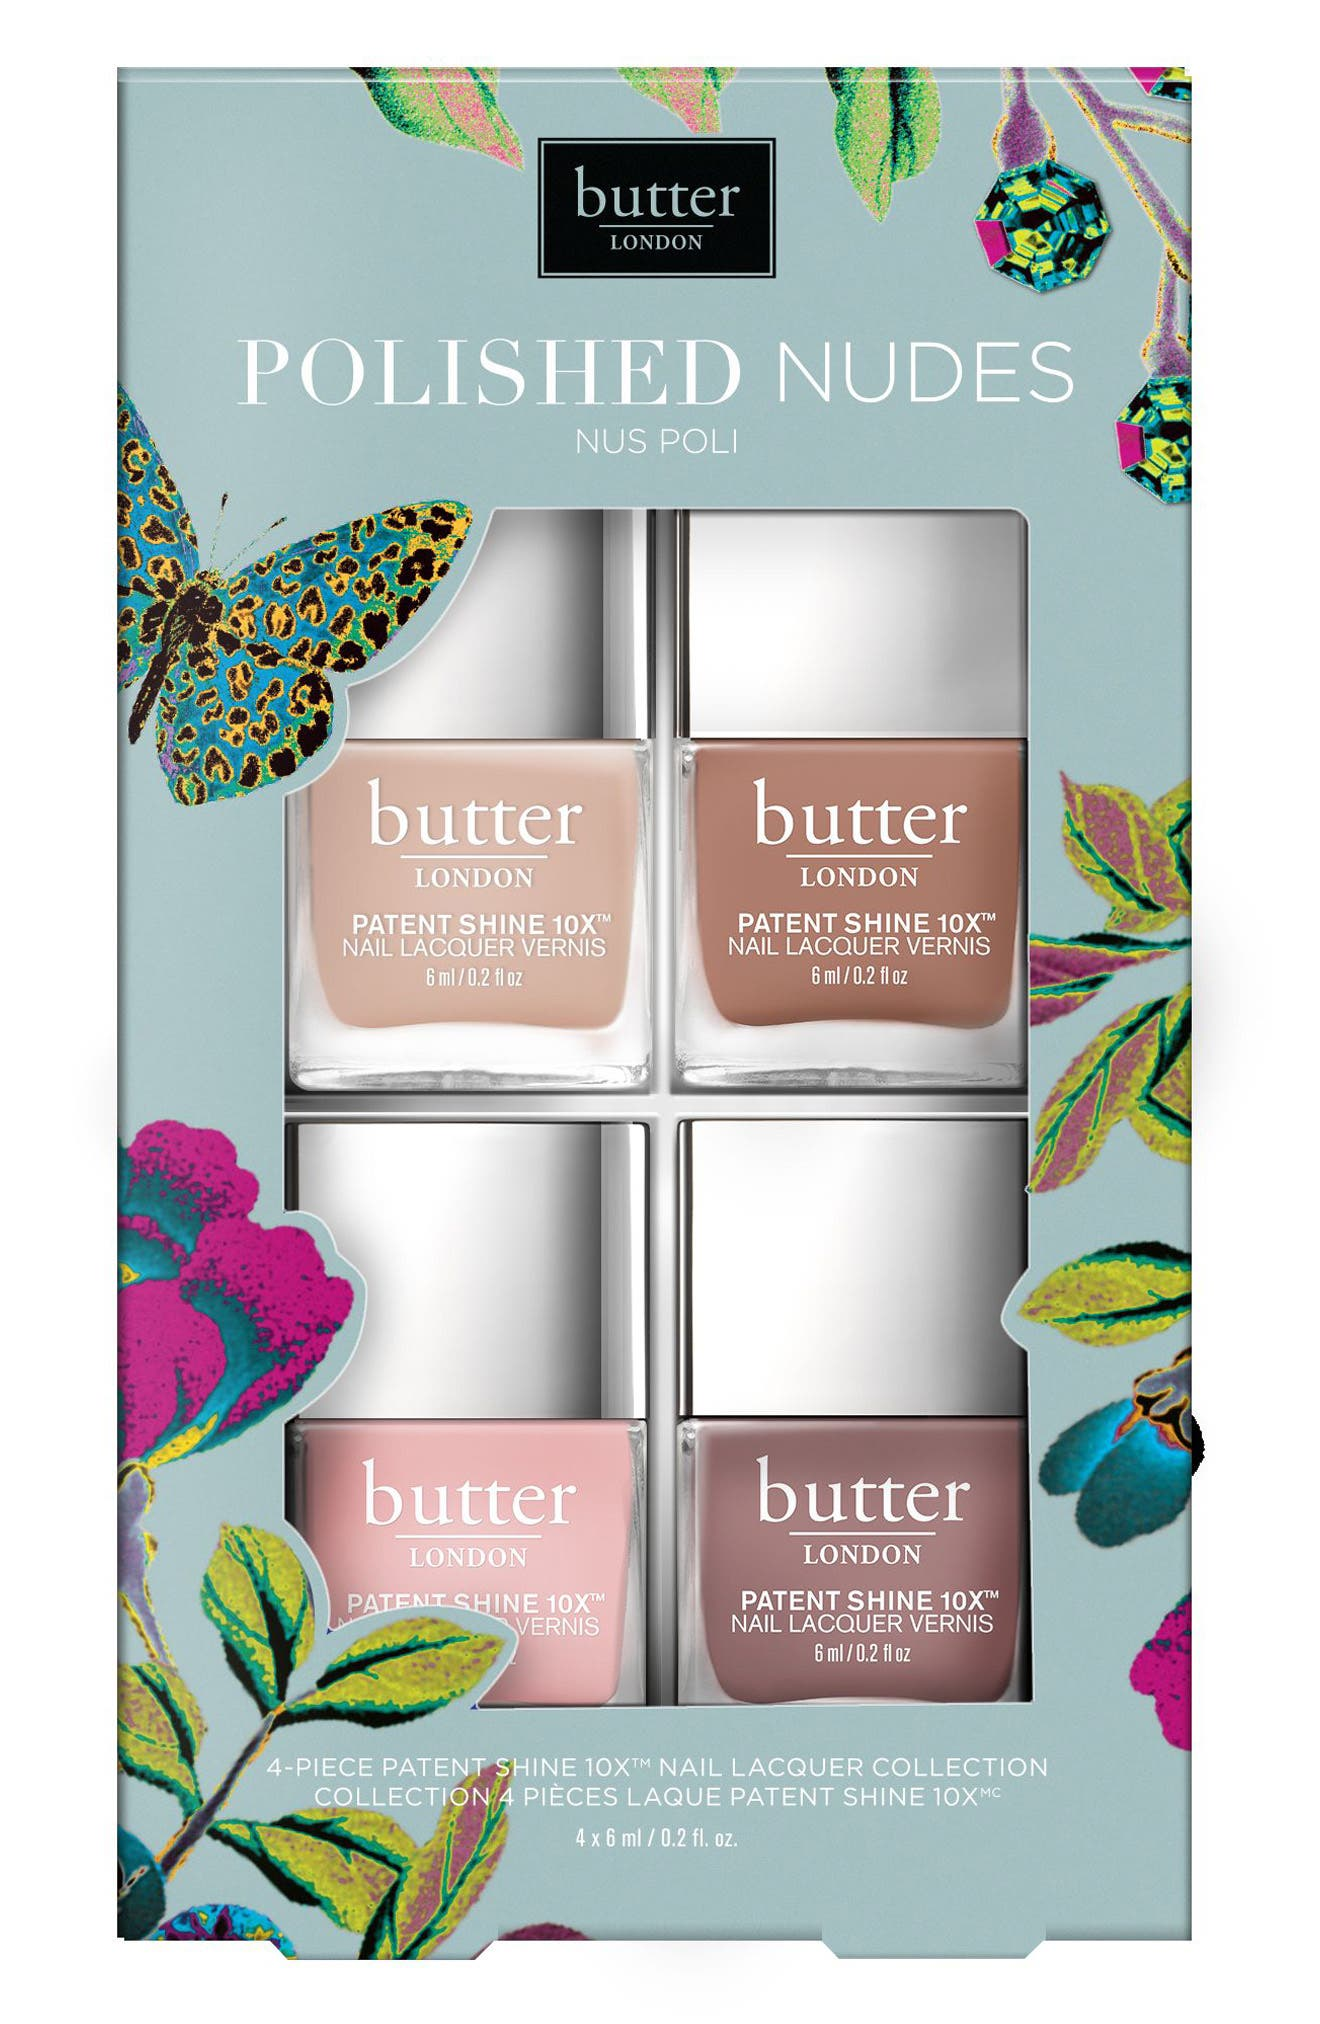 Main Image - butter LONDON Polished Nudes Patent Shine 10x™ Nail Lacquer Set (Limited Edition) (Nordstrom Exclusive)